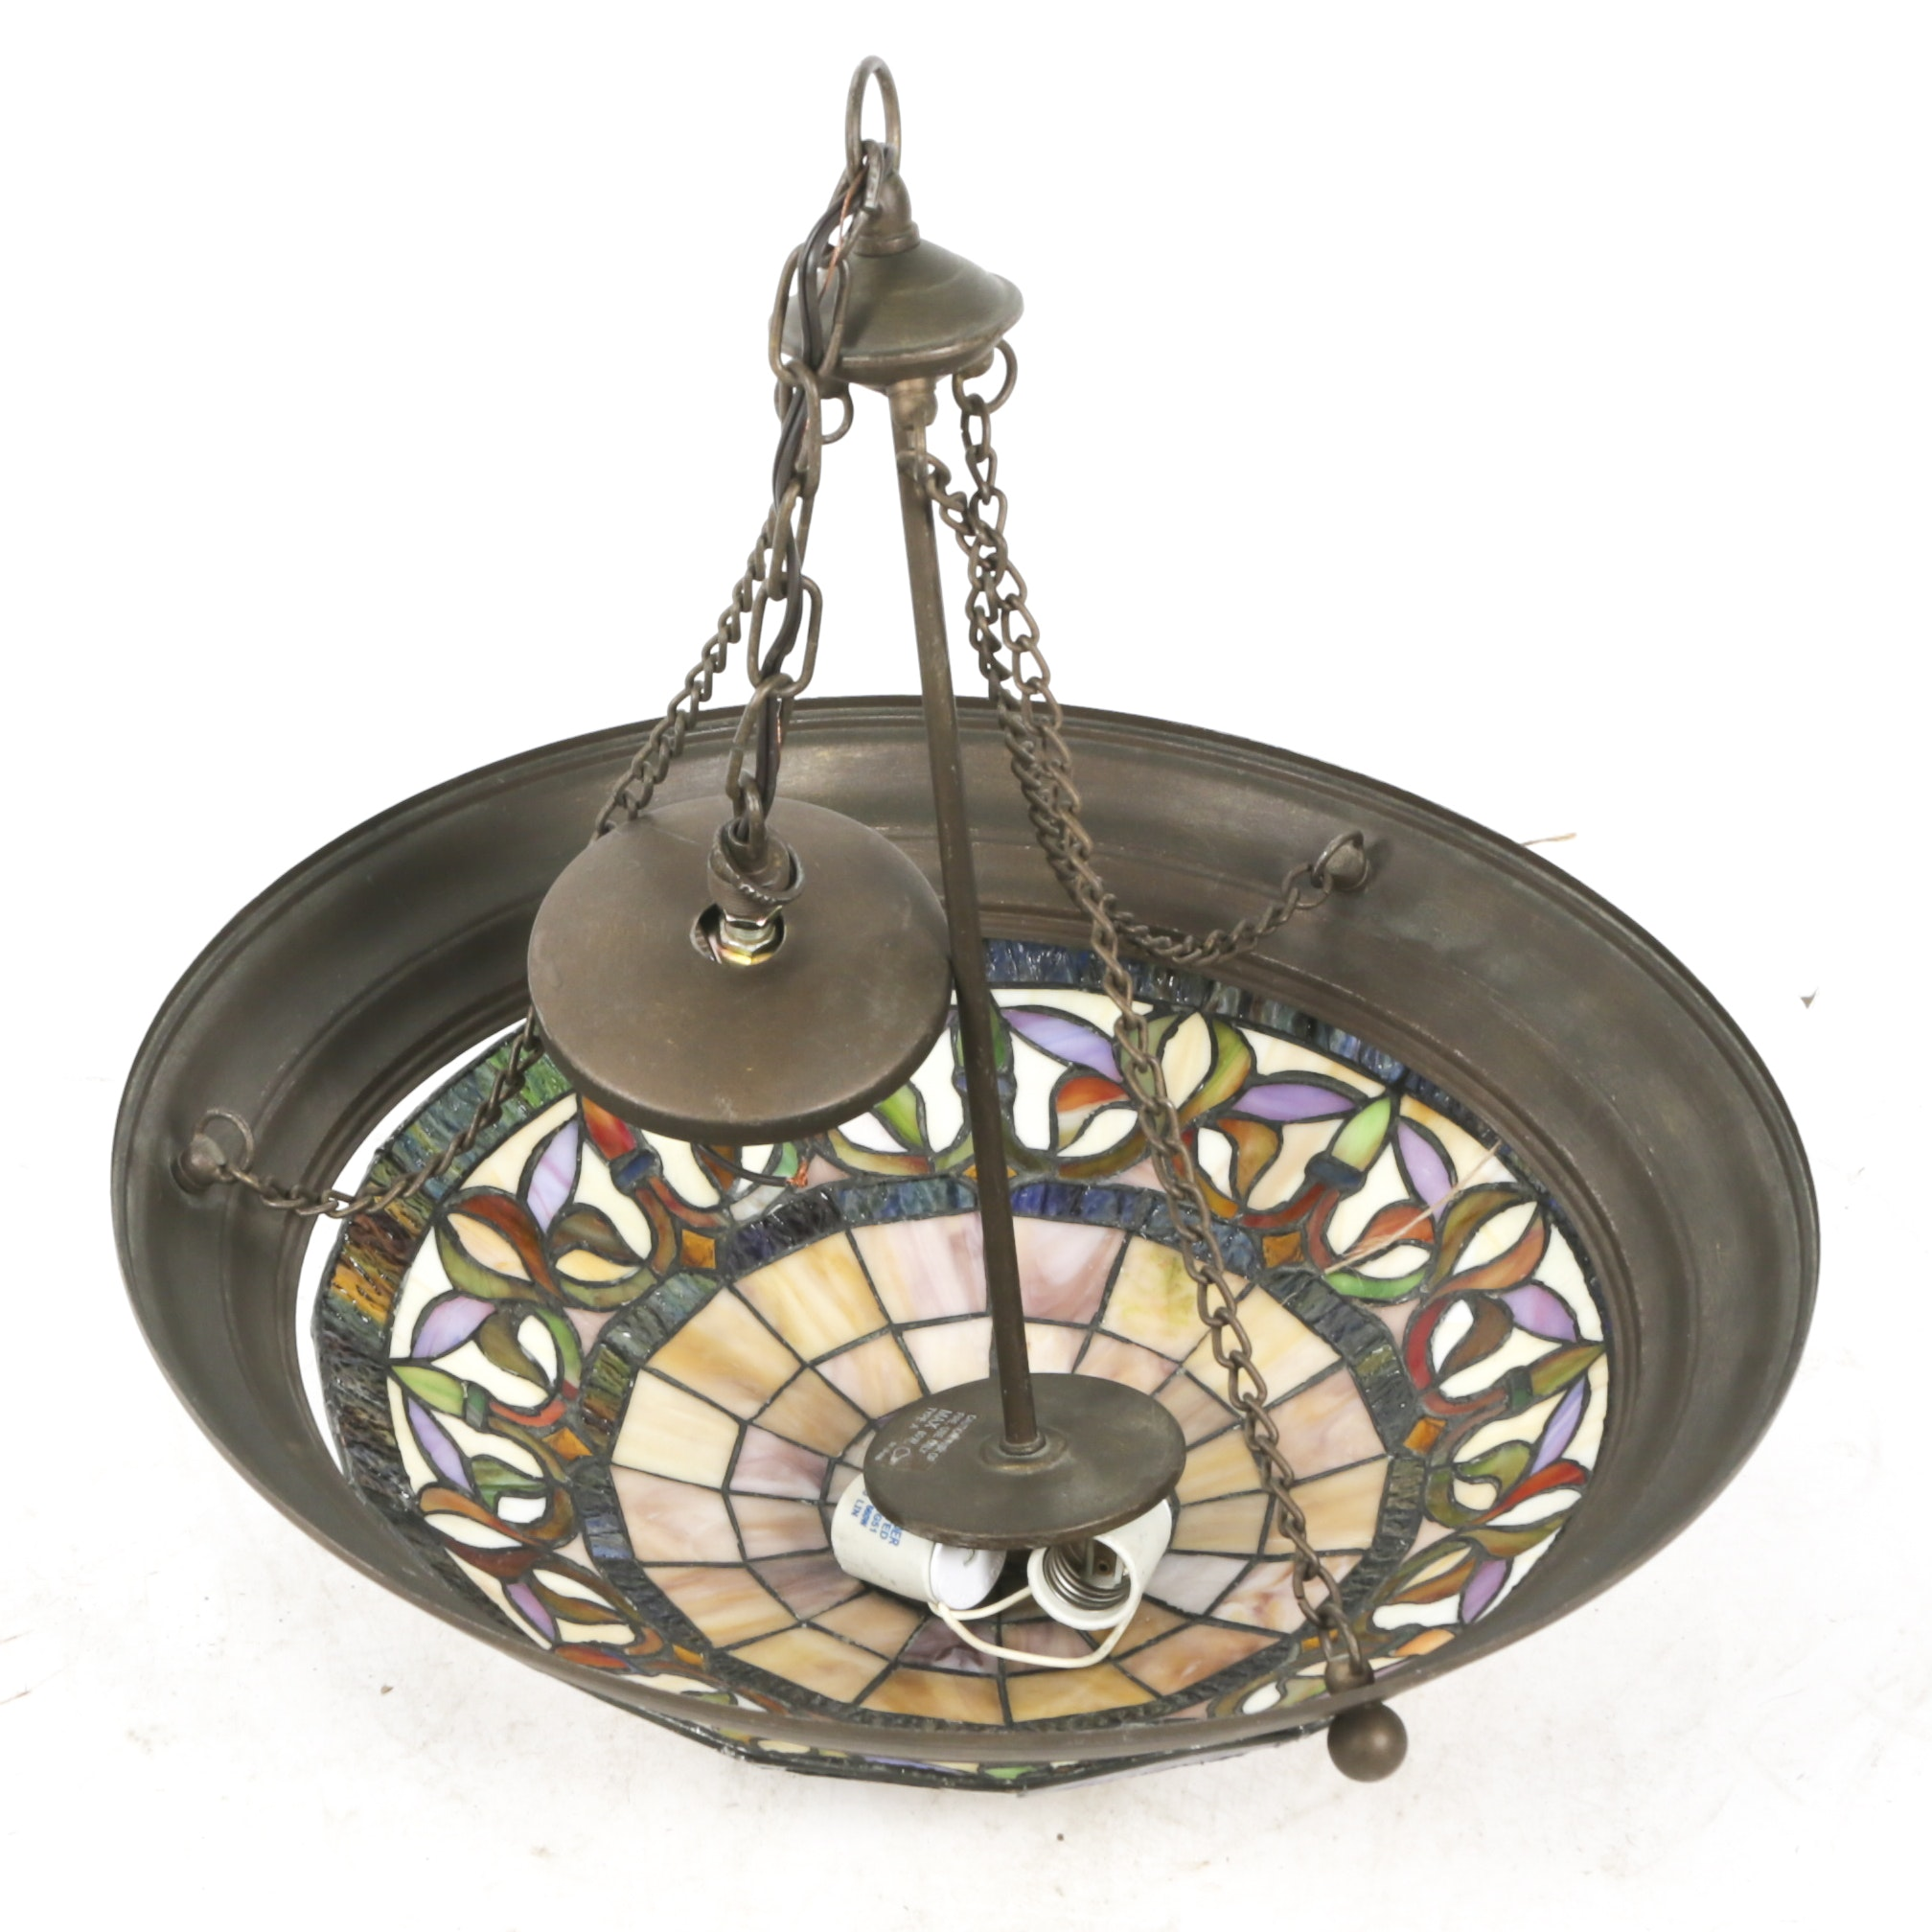 Stained Glass and Brass Tone Hanging Ceiling LIght